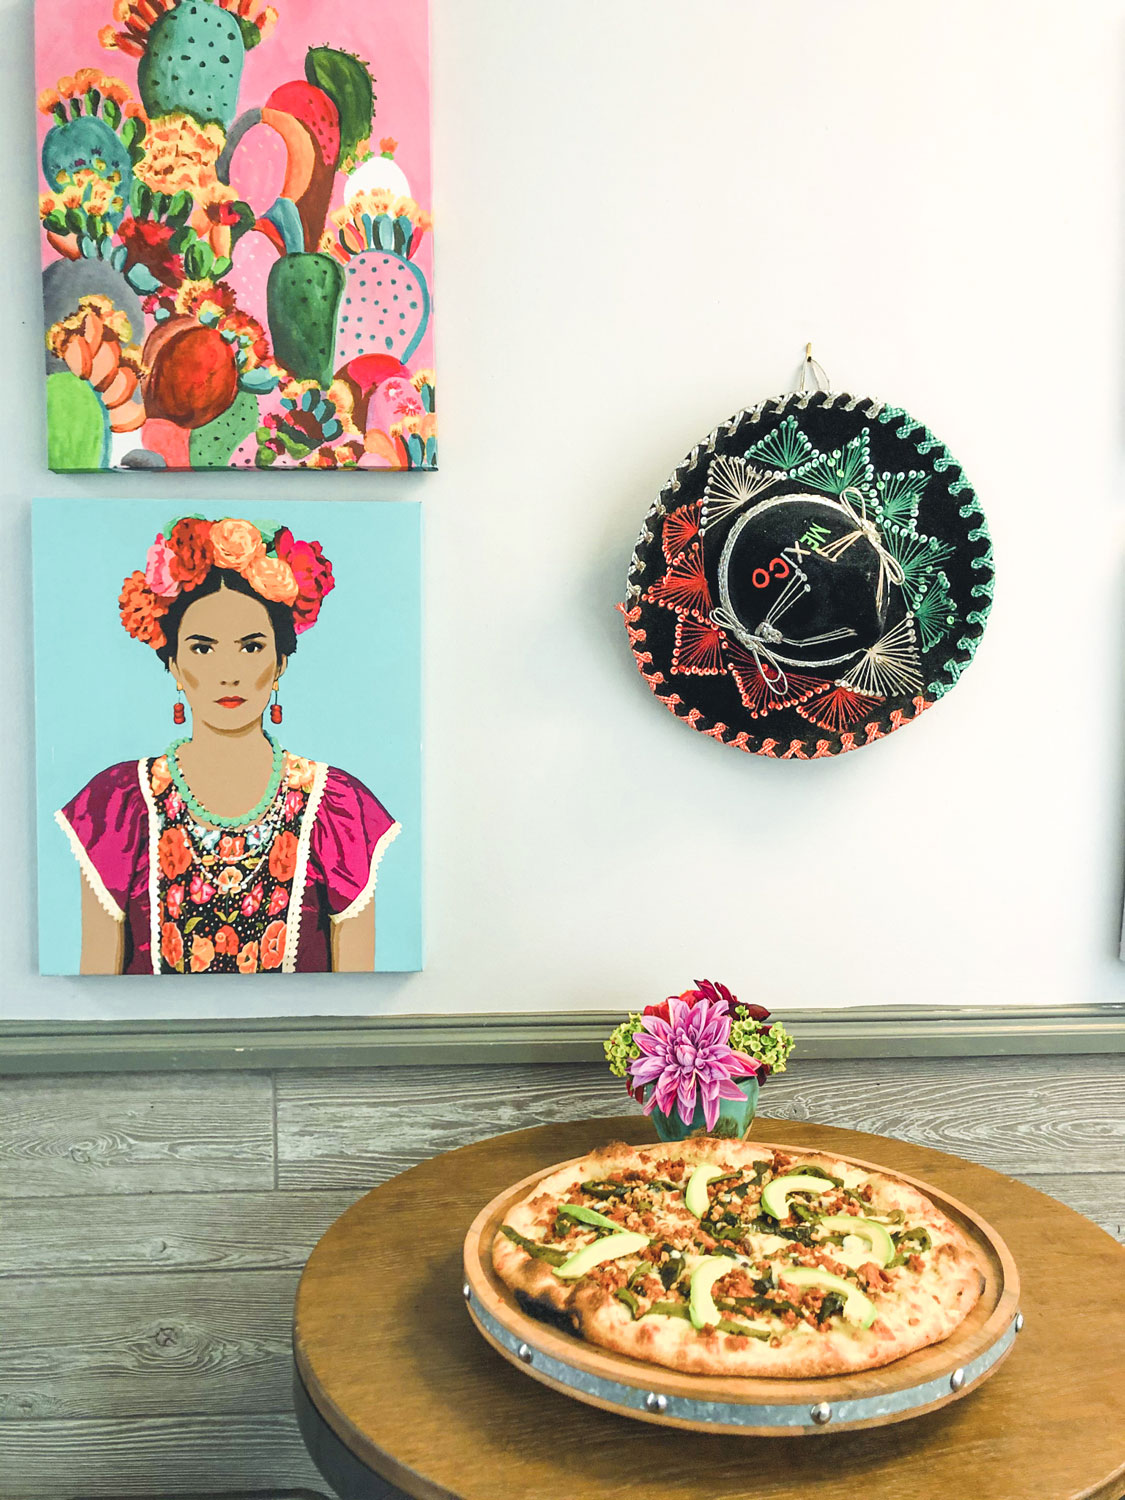 Mexican pizza accompanied by vibrant, colorful Mexican art.